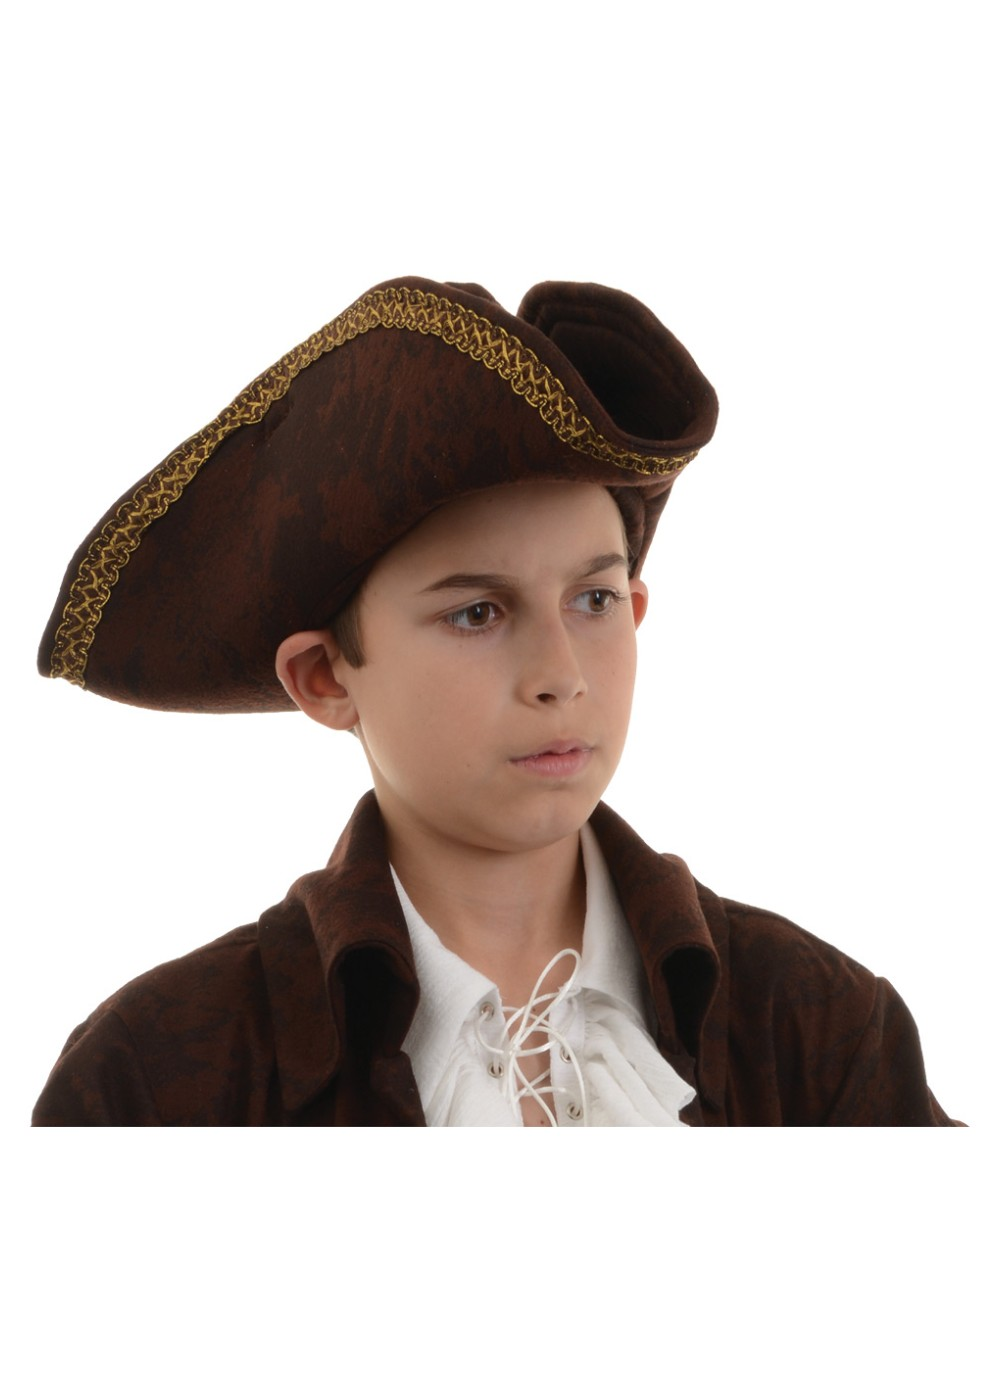 Kids Pirate Captain Brown